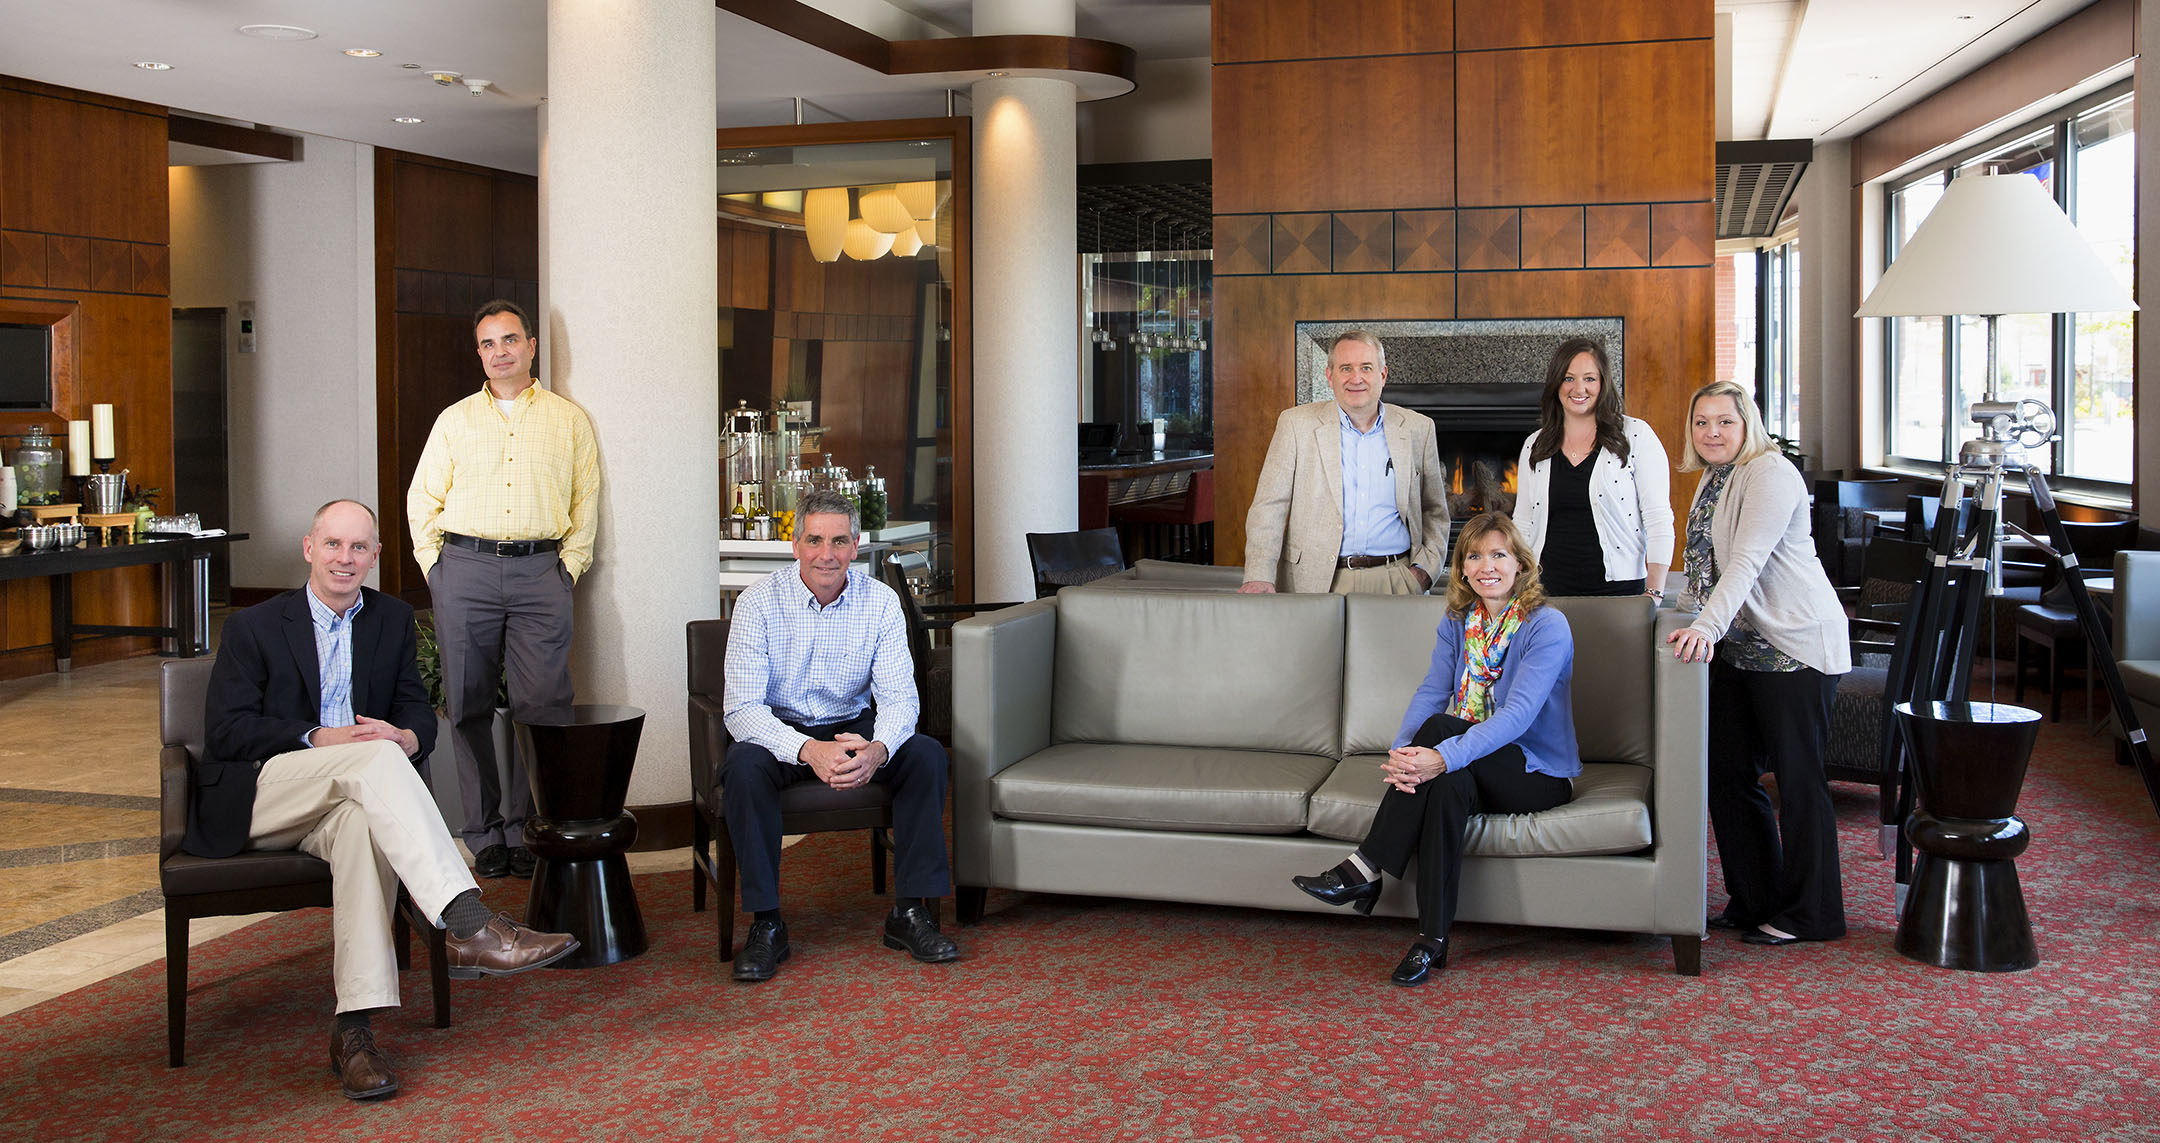 Group Portrait of MEMIC Hilton Garden Inn for Annual Report